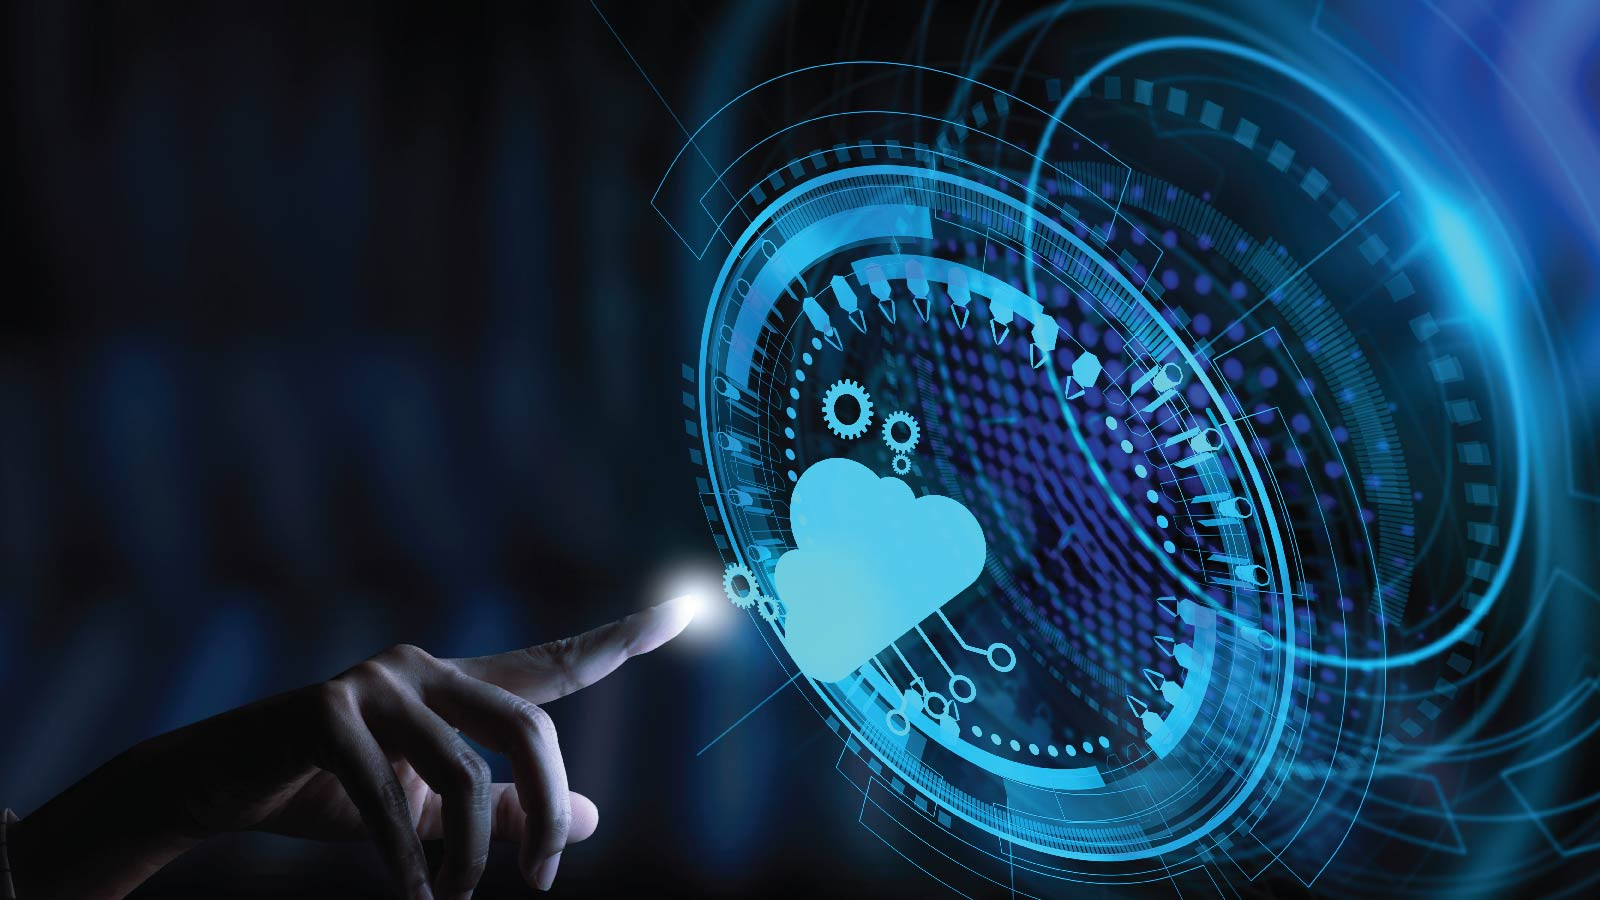 The Top predictions for cloud computing in 2021